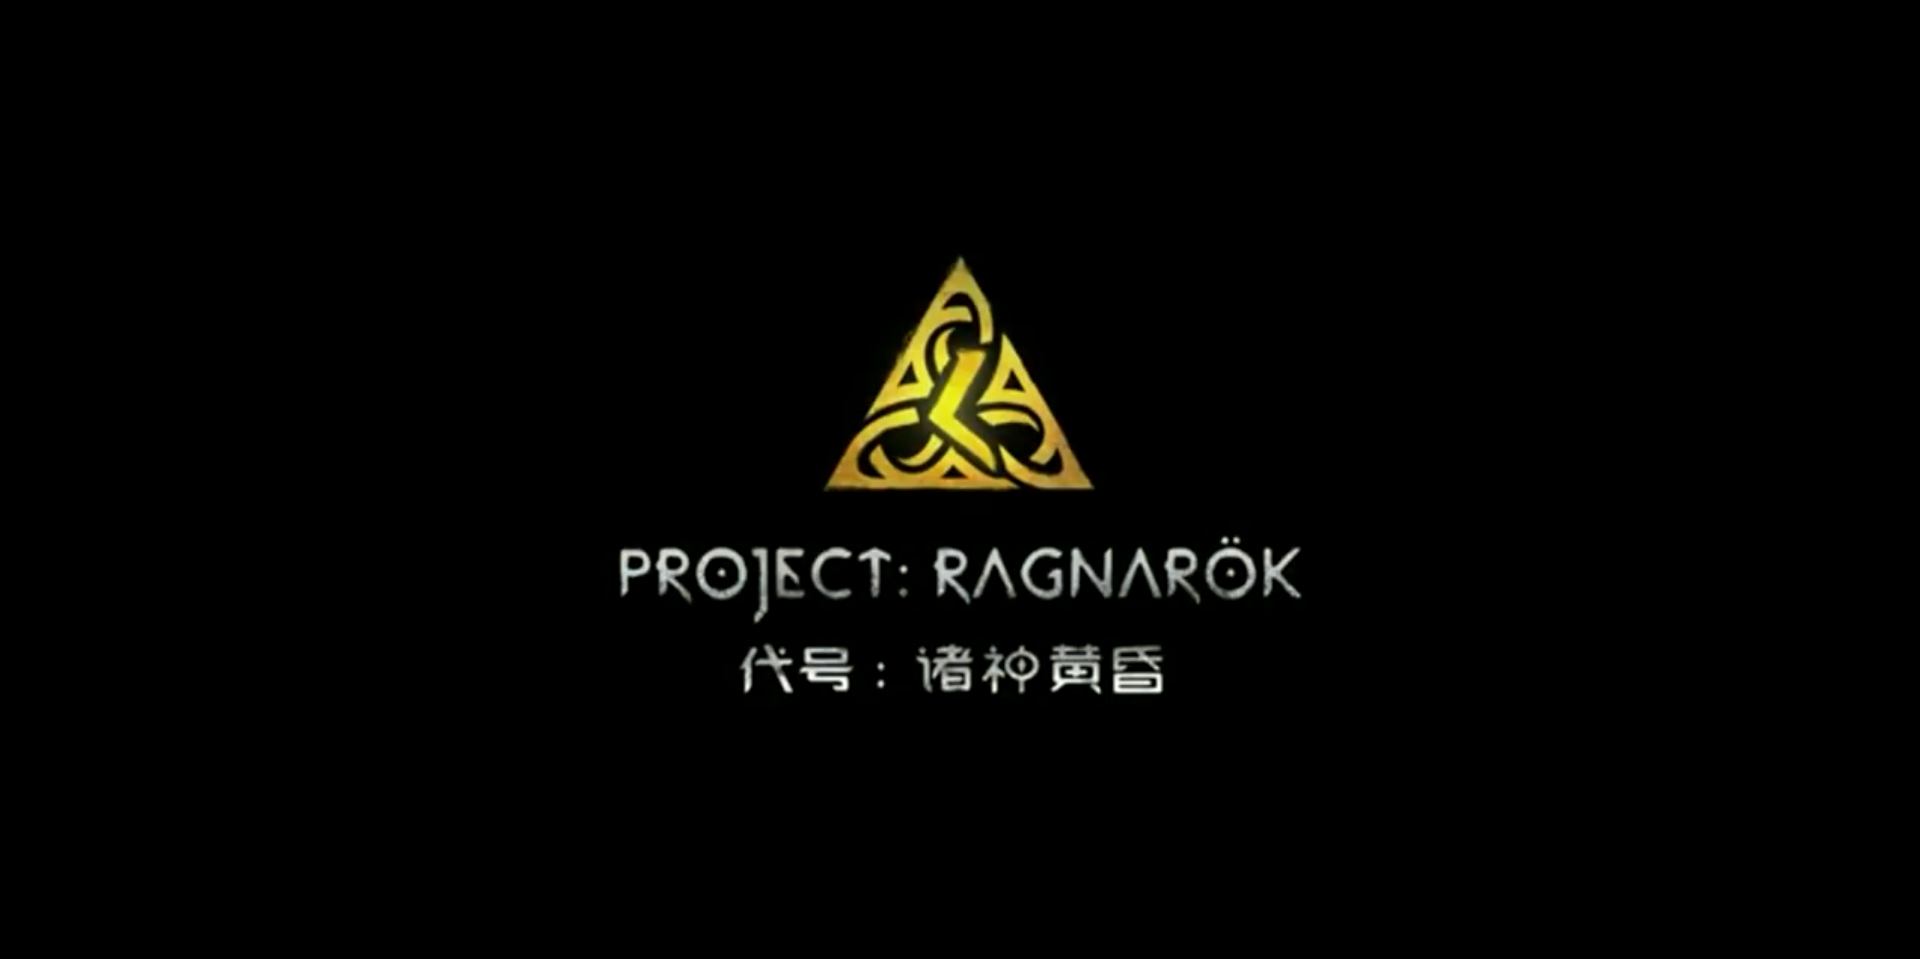 Project Ragnarok is a multi-platform open-world RPG from NetEase that takes cues from premium AAA games